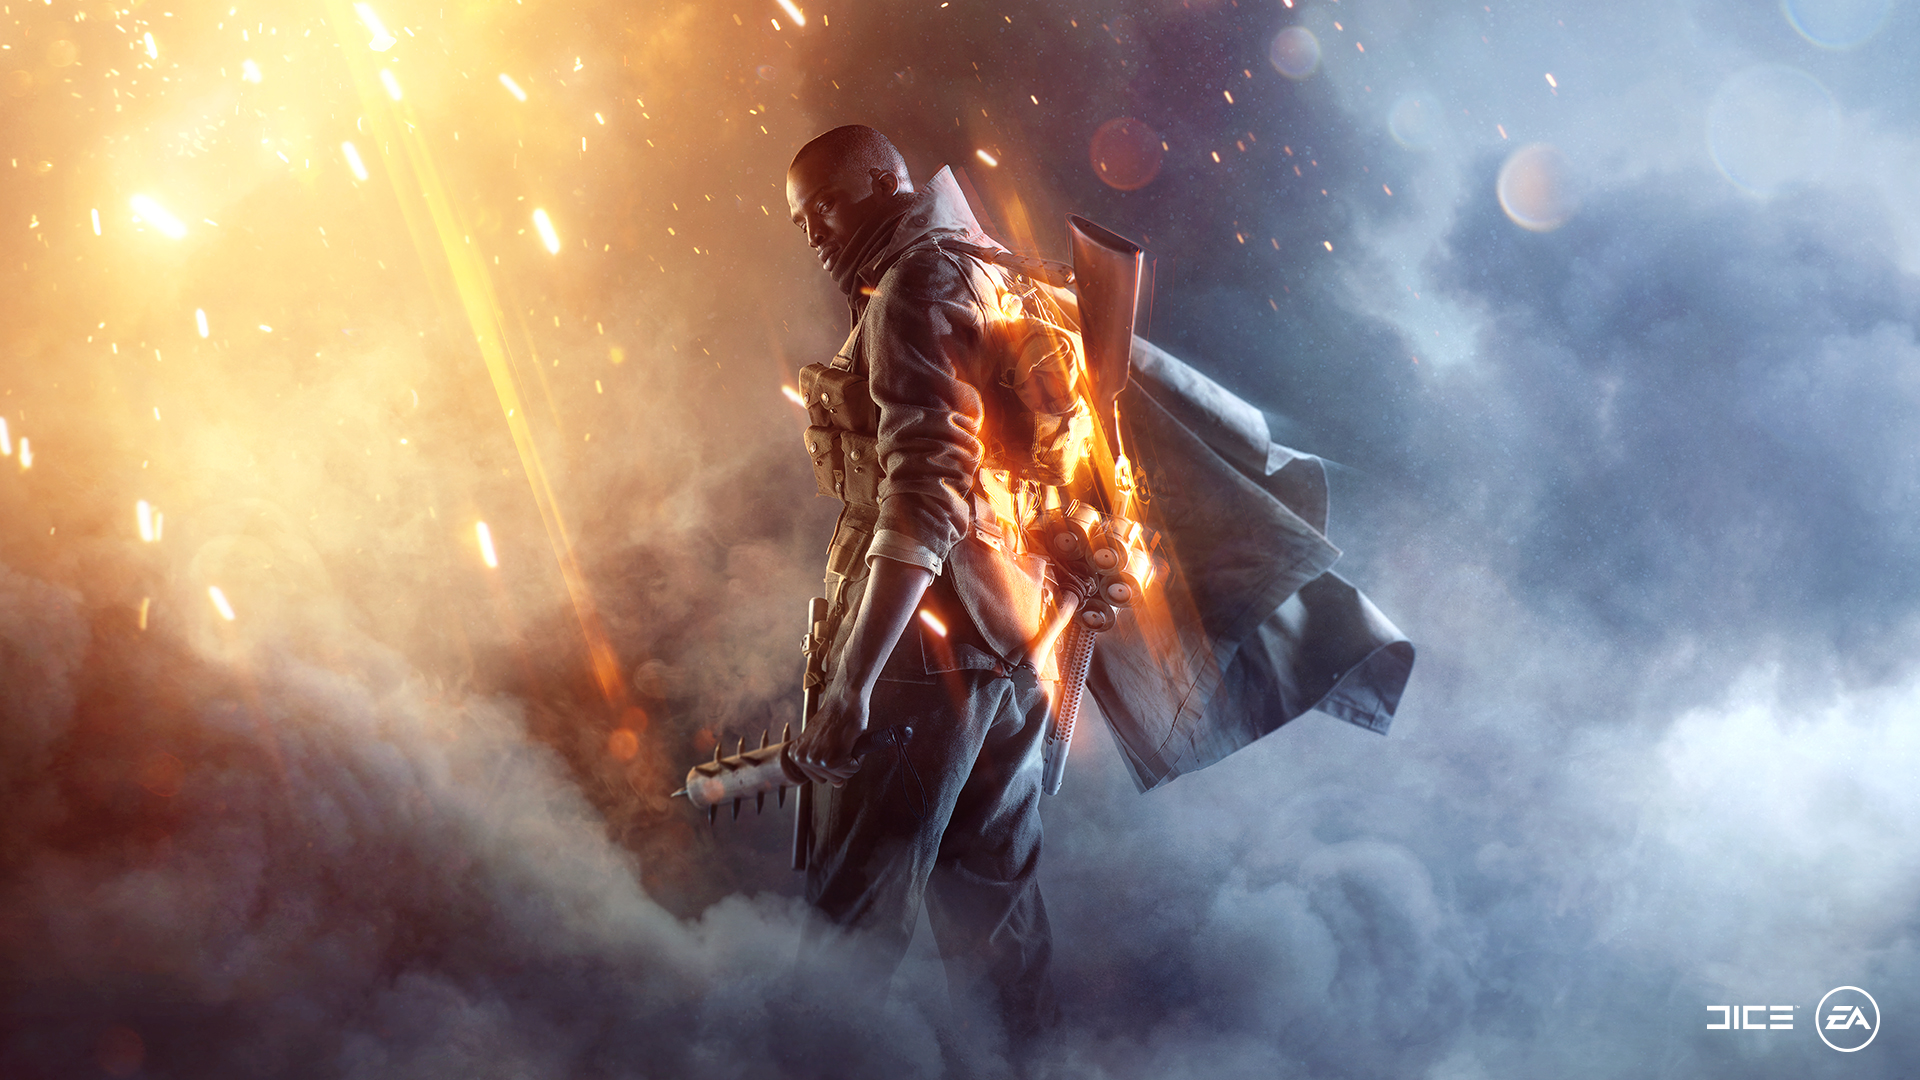 Battlefield 1 Devs Explain Why They Went Back To World War 1 BF EEDE WalllPaper 1920x1080 v2